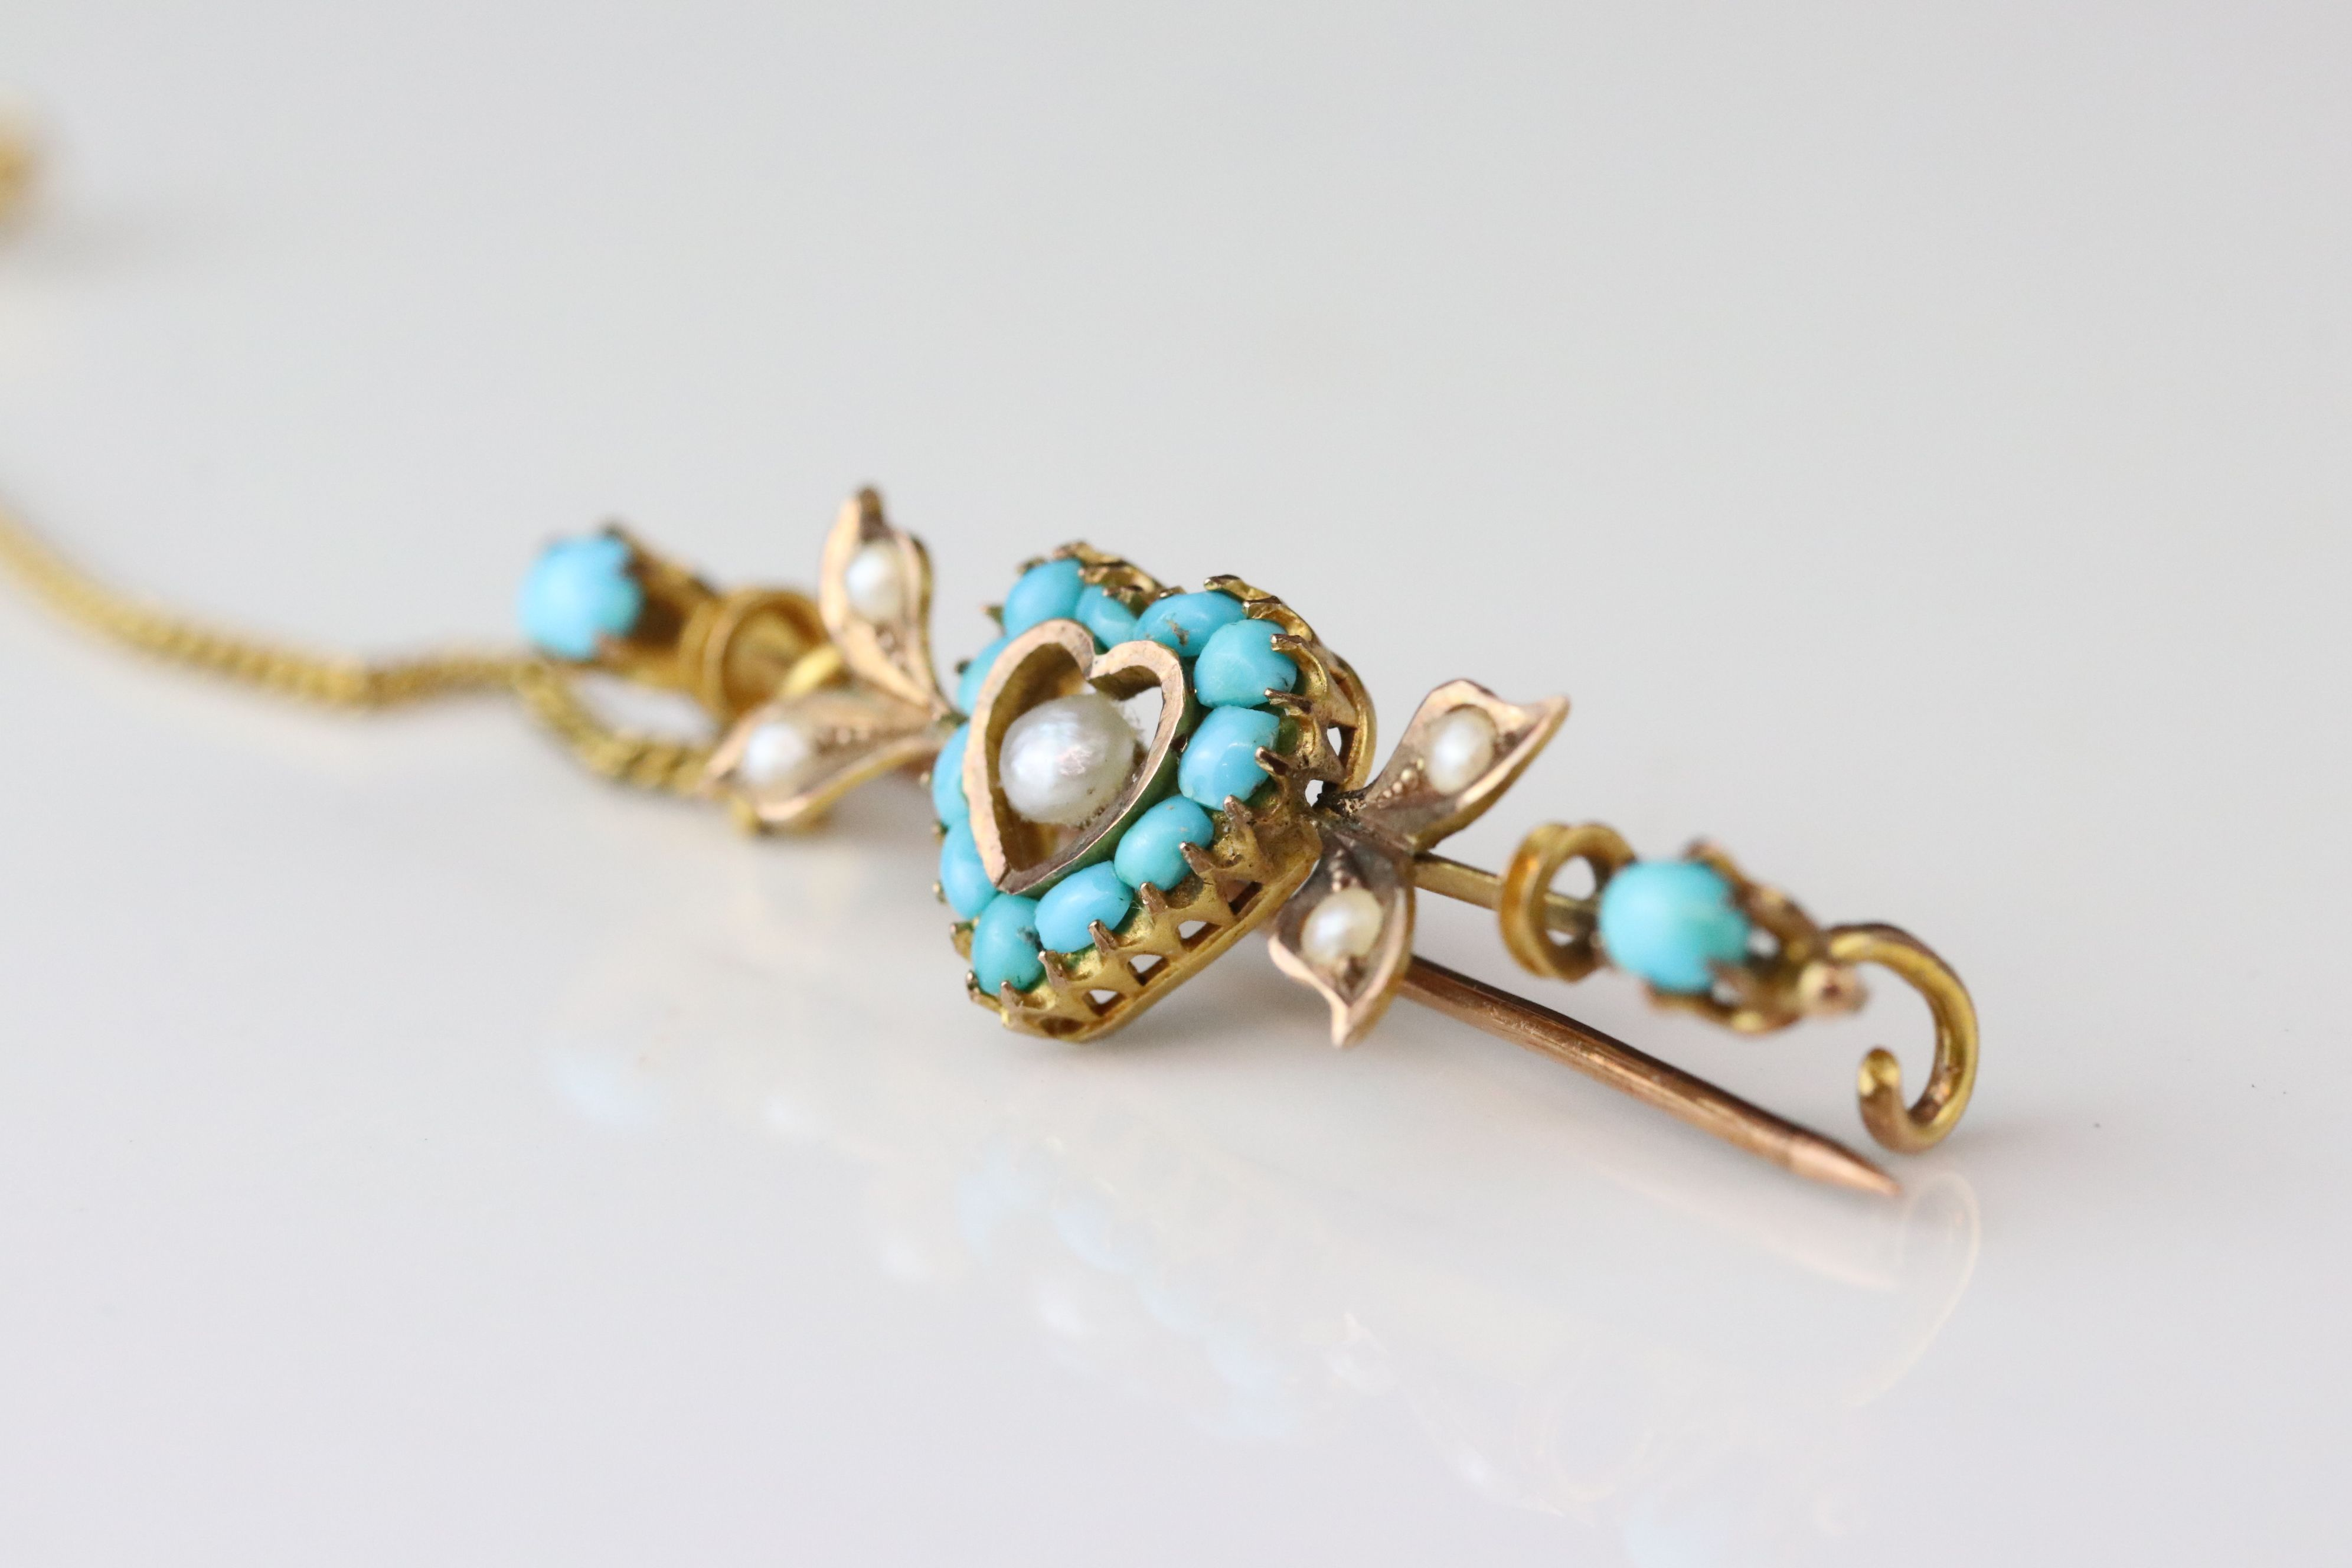 German 19th century turquoise and seed pearl 8ct gold sweetheart brooch, the central heart-shaped - Image 3 of 5